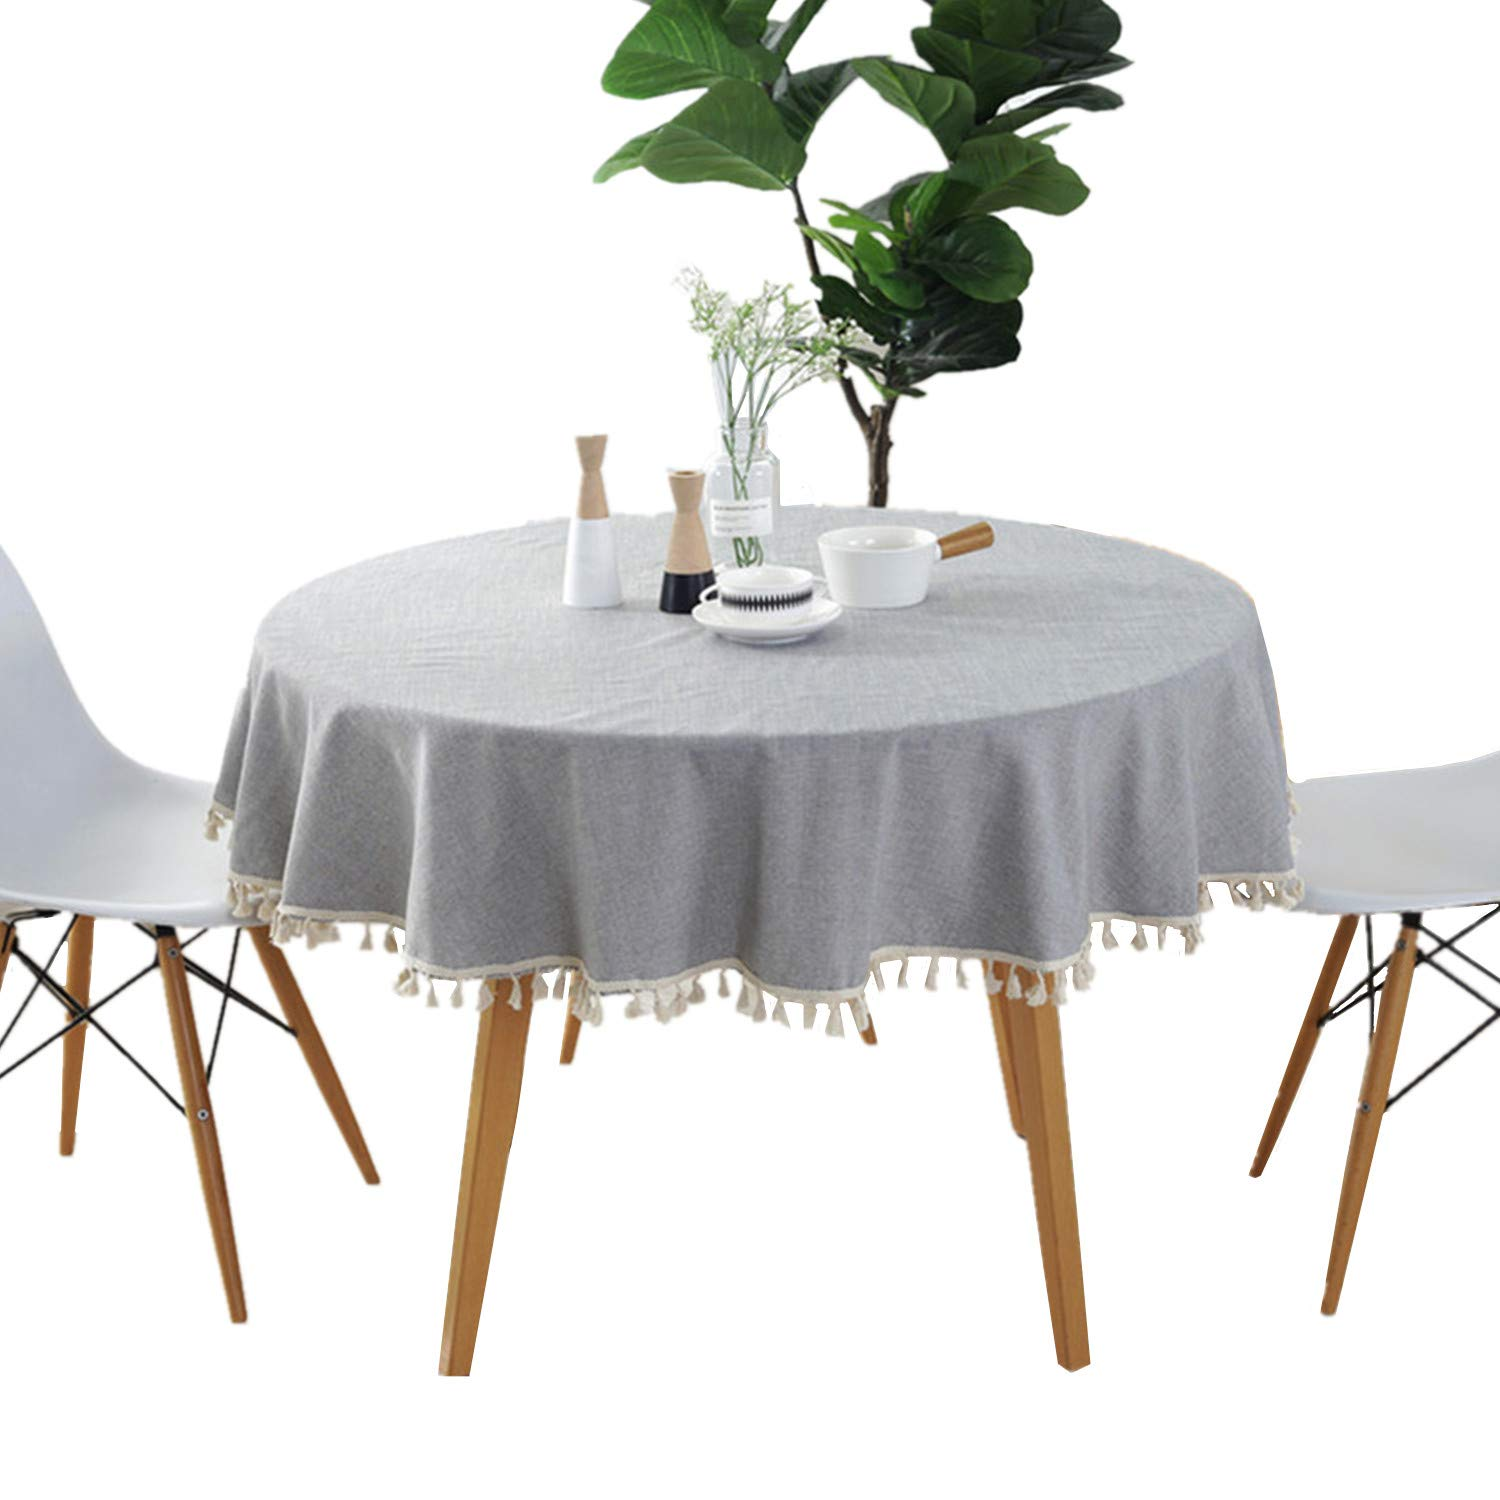 Surprising Round 60 Tablecloth Cotton Grey Tablecloth With Multi Tassels For Home Tabletop Decoration Home Interior And Landscaping Ponolsignezvosmurscom